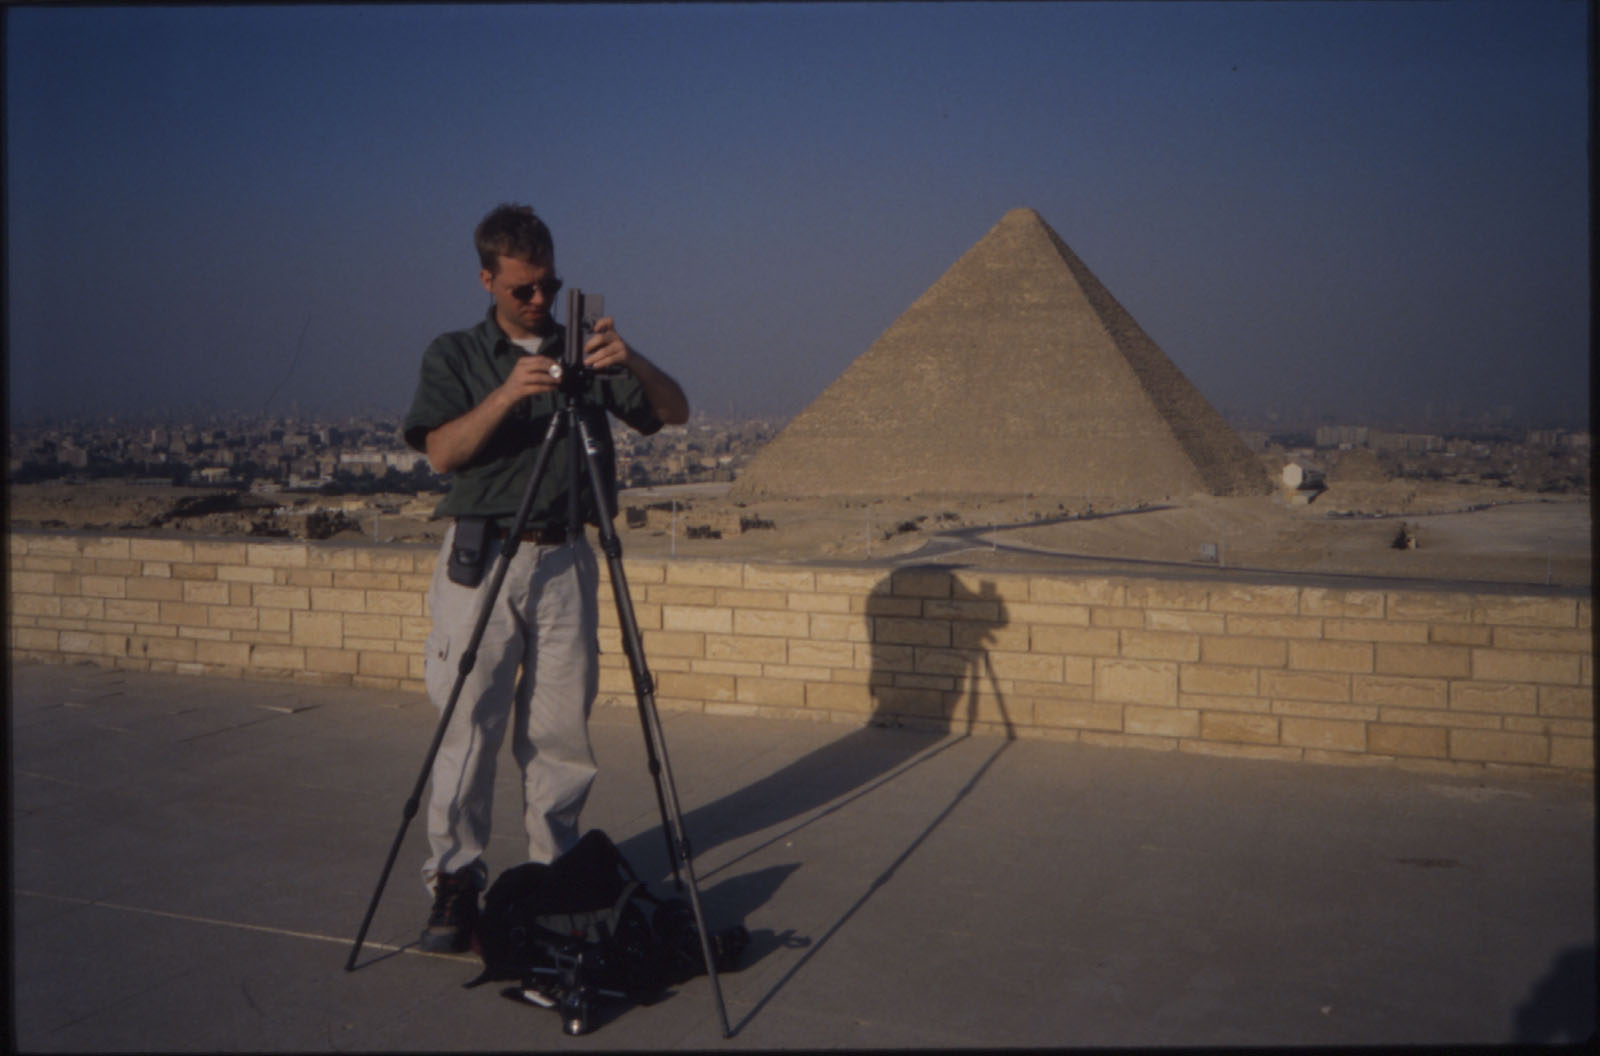 People & places: Site: Giza; View: Harvard Camp, Khufu pyramid